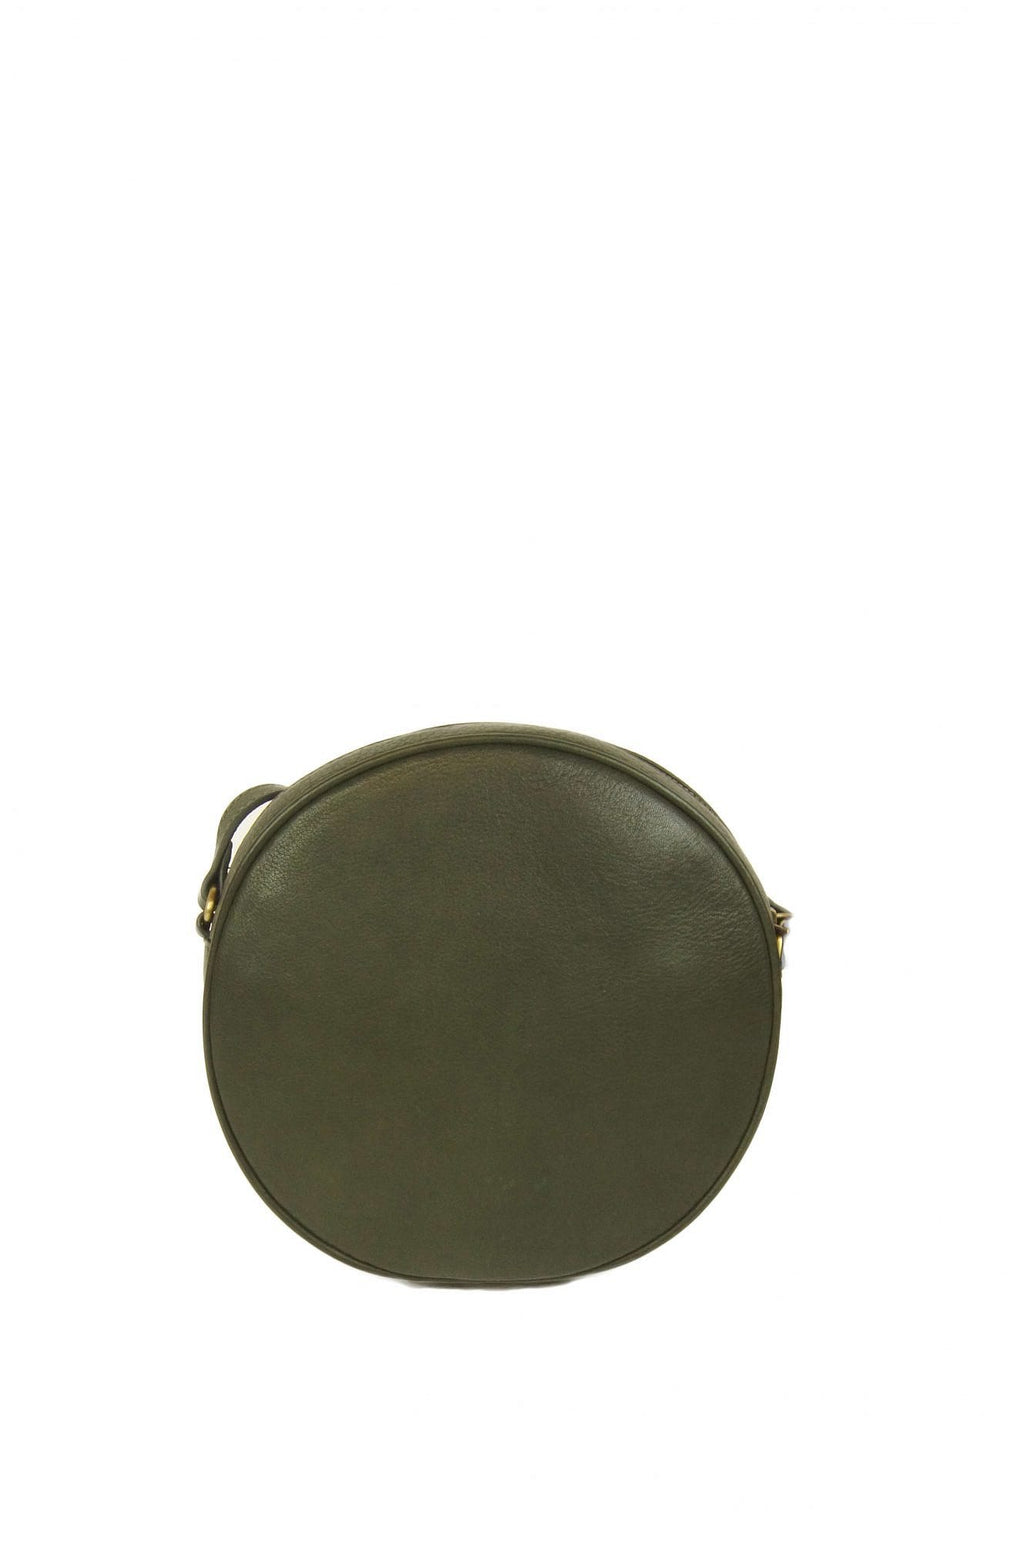 O My Bag Luna Bag Green Soft Grain Leather